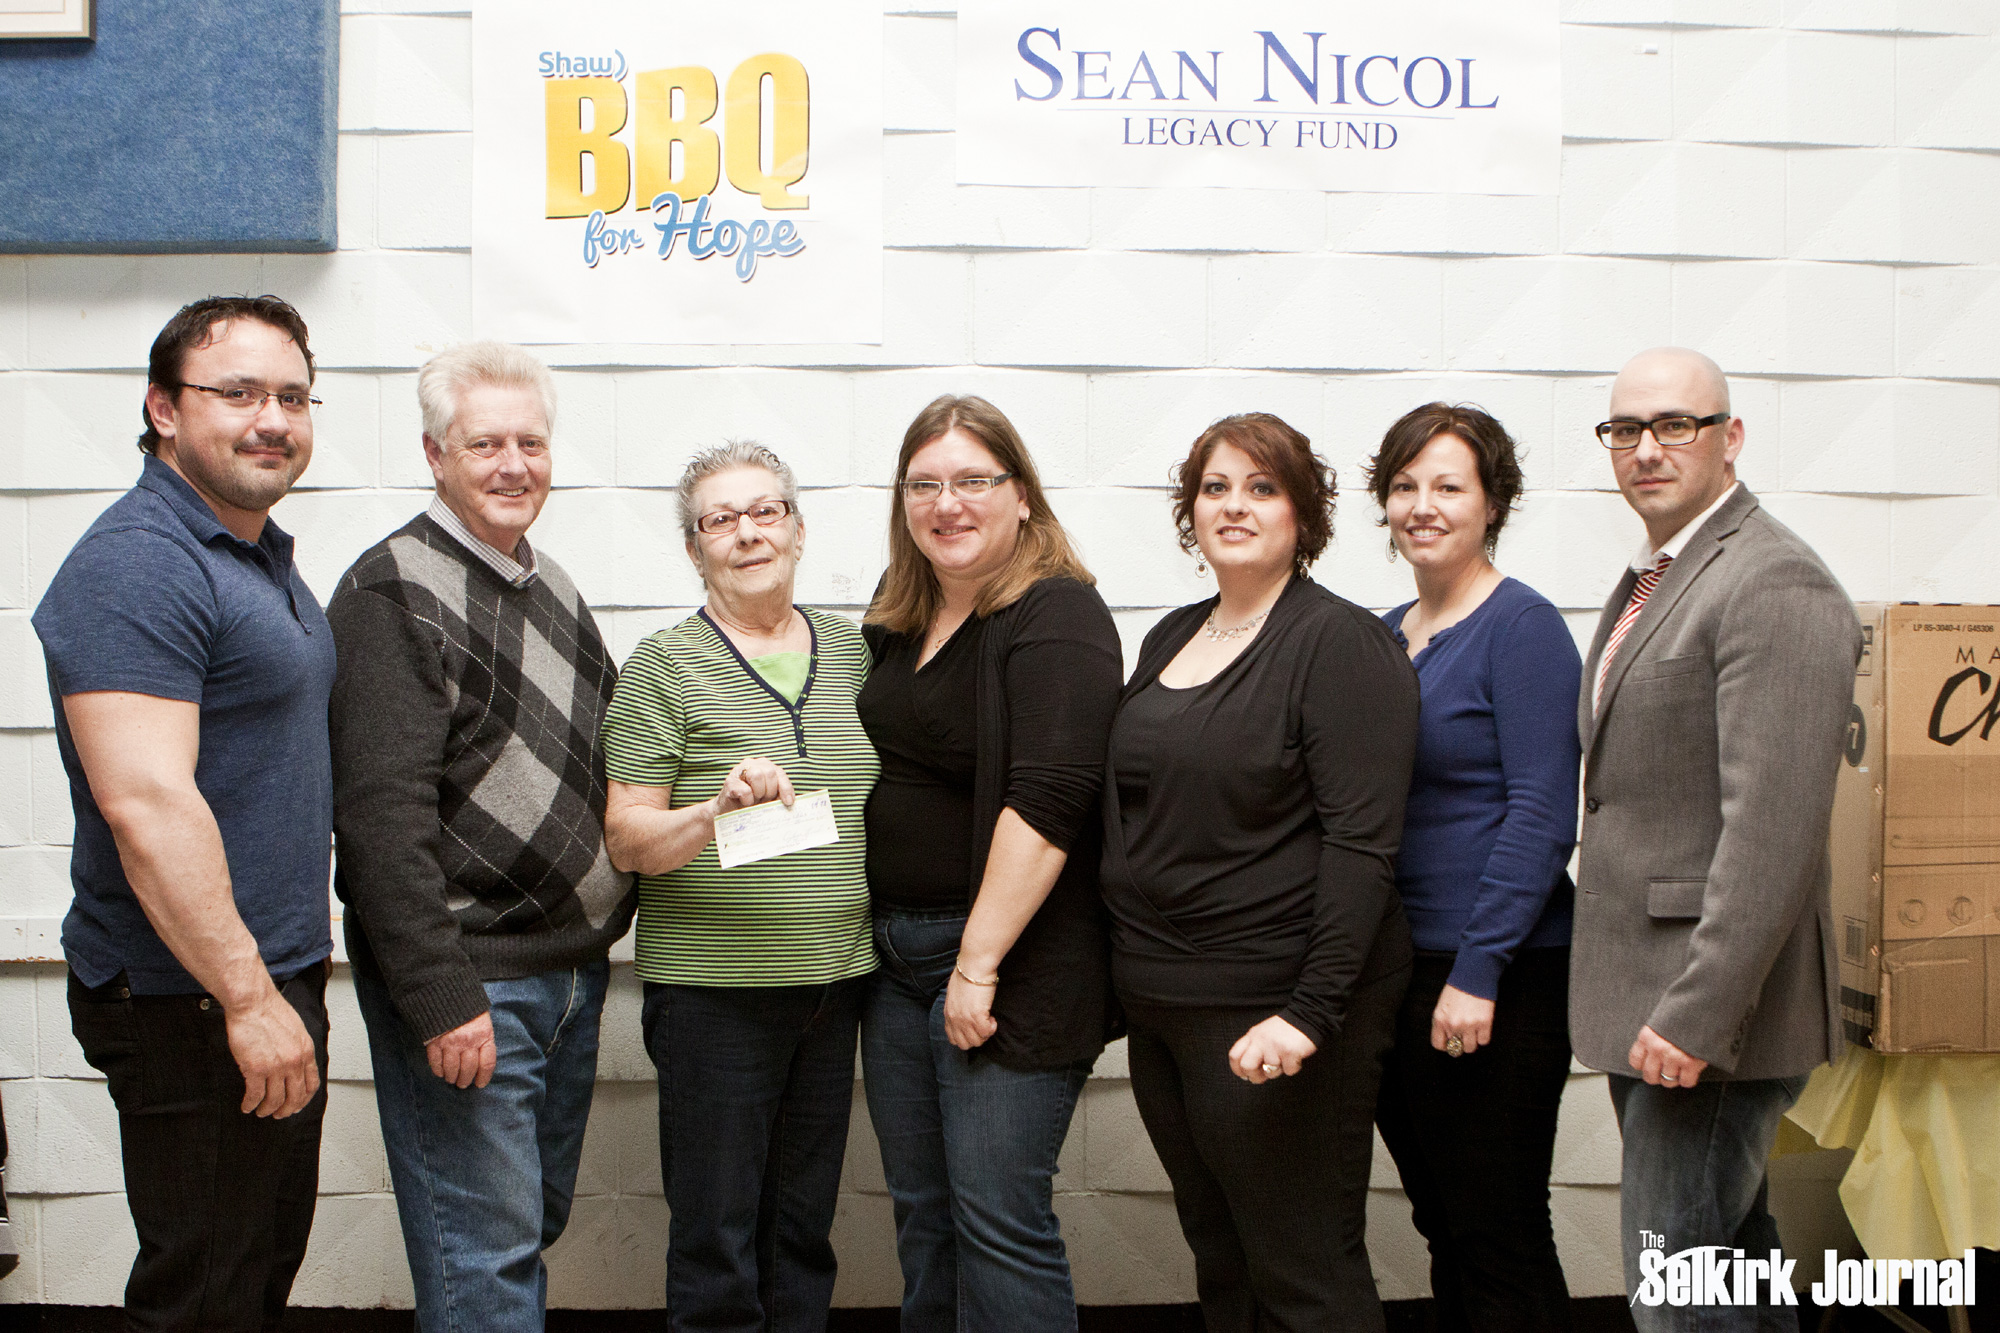 Sponsors Matt Evans and Chris Turcotte join SNLF committee members to present representatives from Our Daily Bread Soup Kitchen with a $100 Grant.